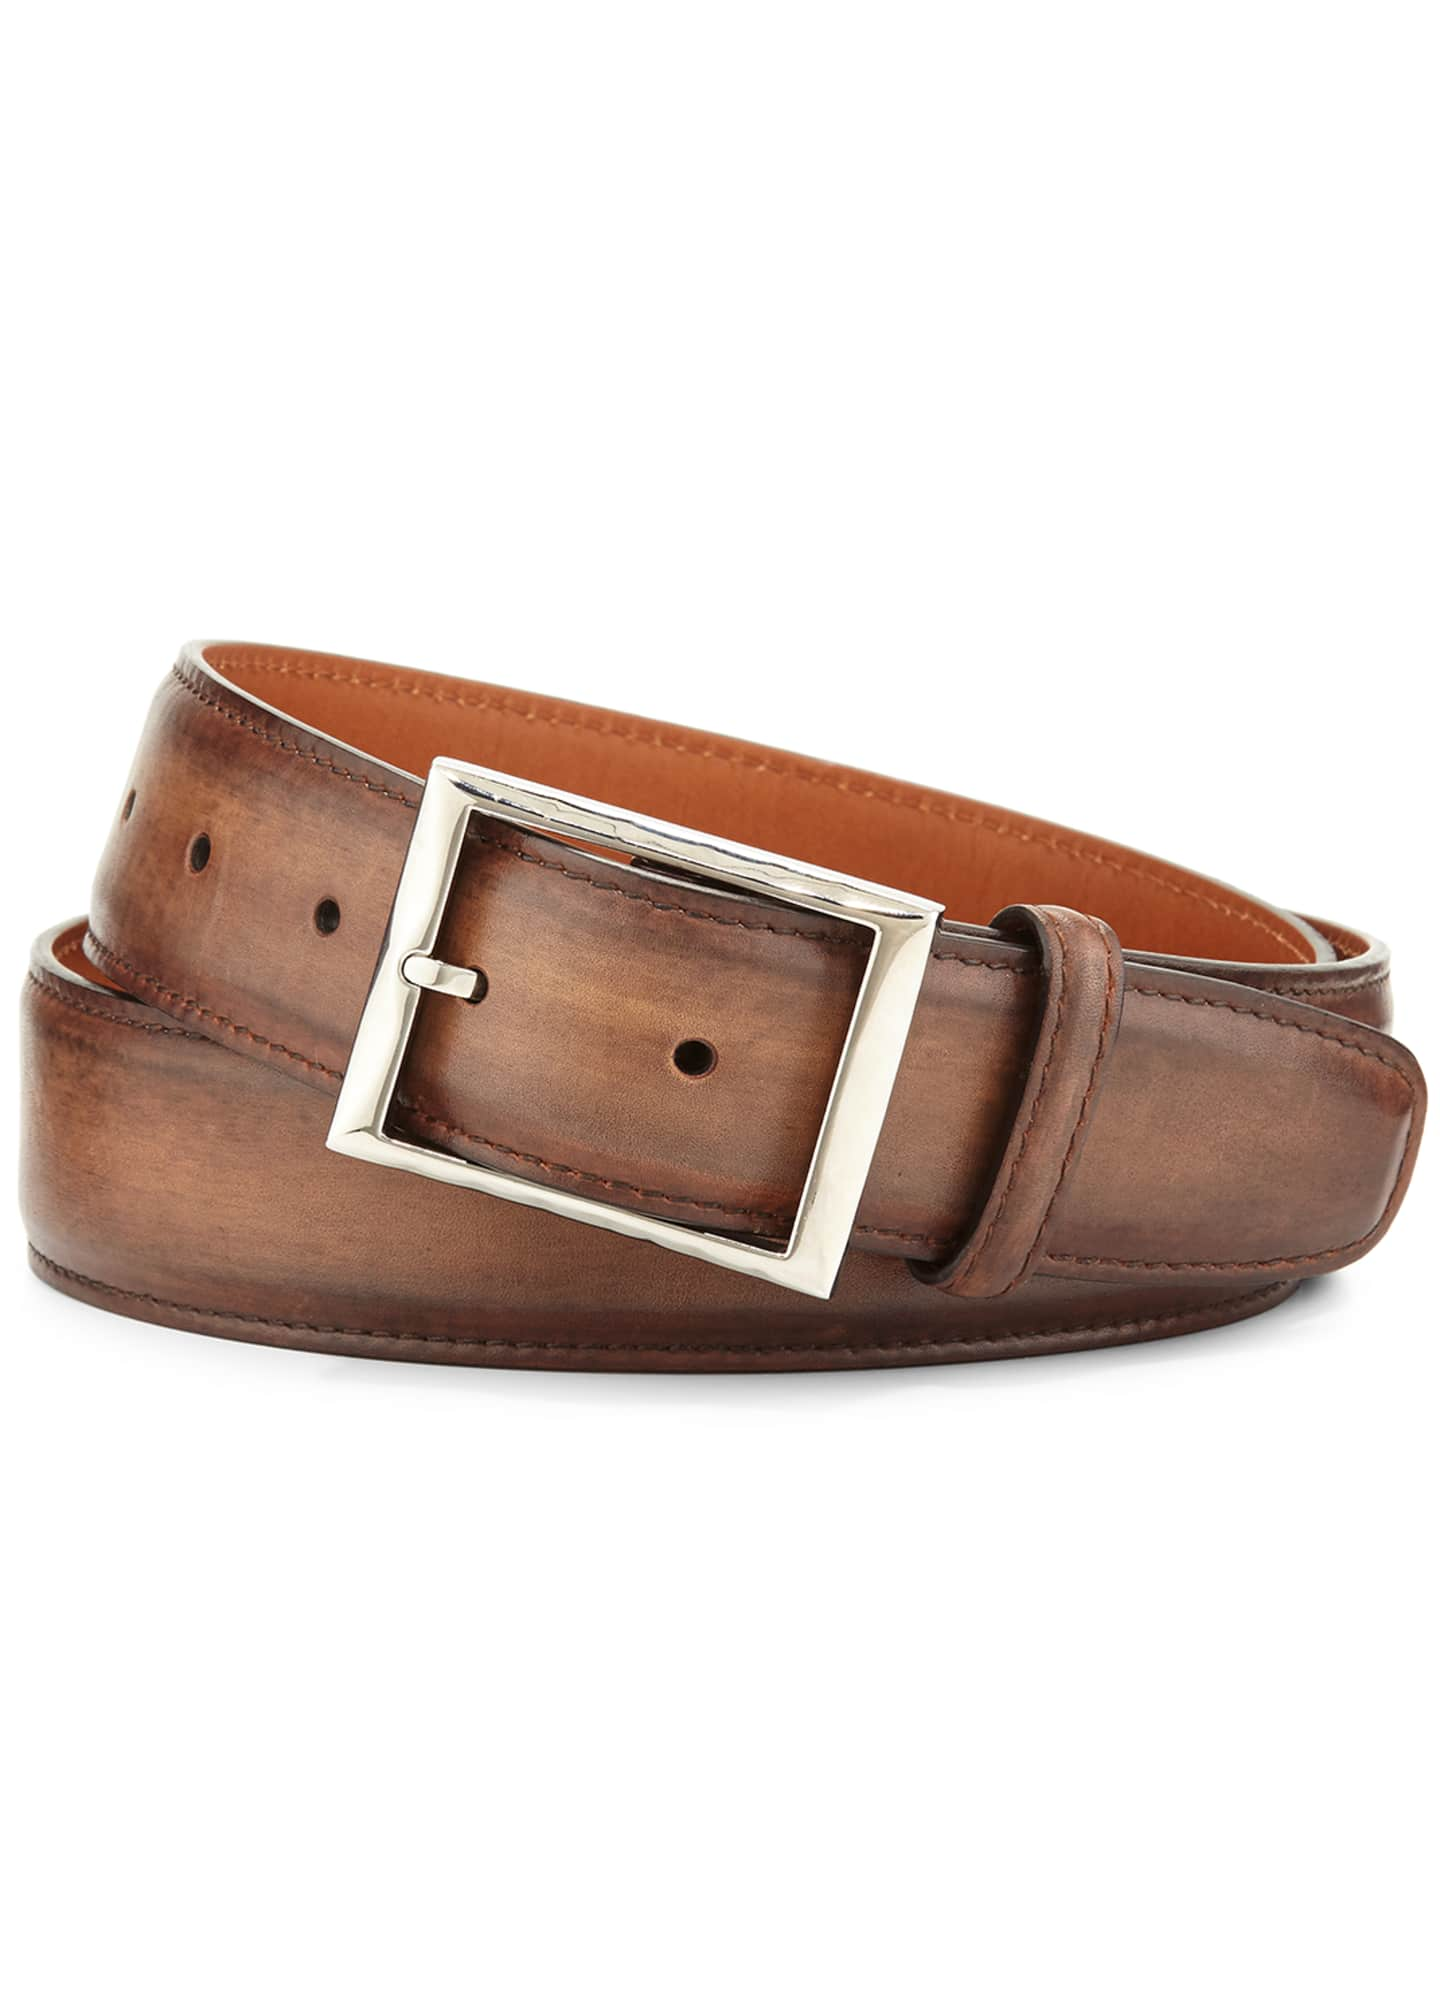 Berluti Venezia Leather Belt